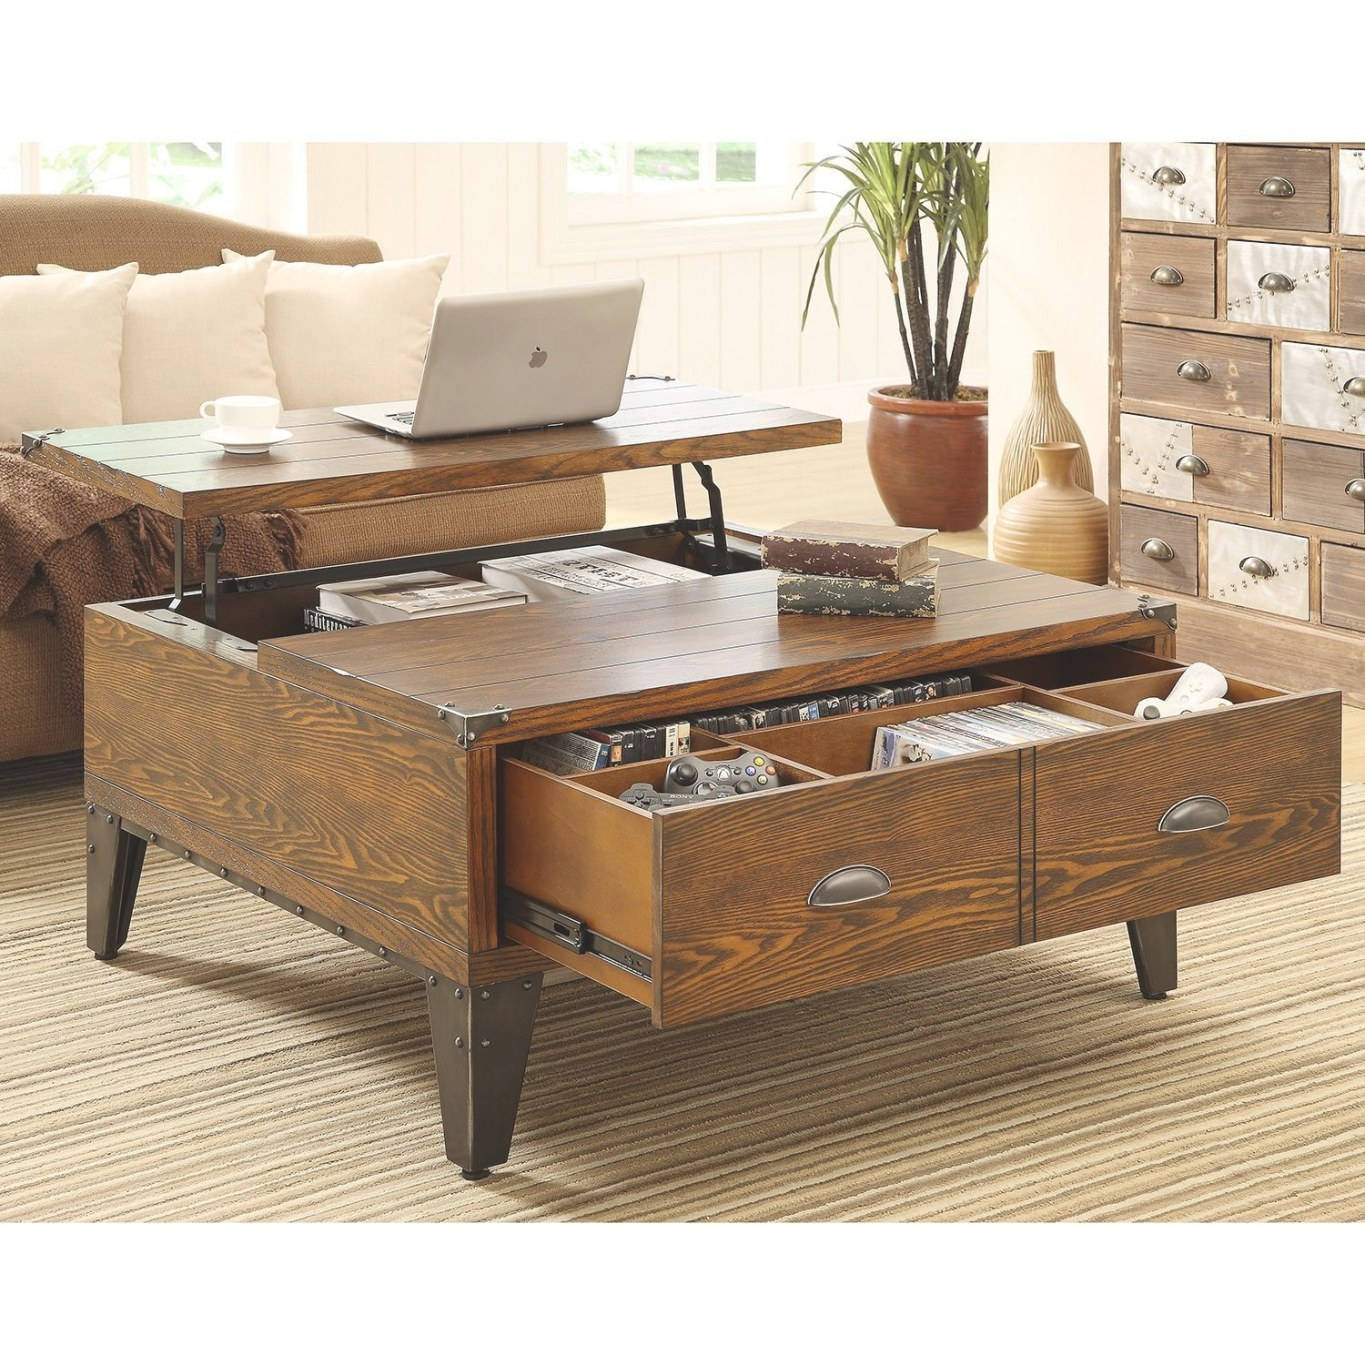 Wellington Lift-Top Coffee Table | Dark Wood Coffee Table intended for Lift Top Coffee Tables